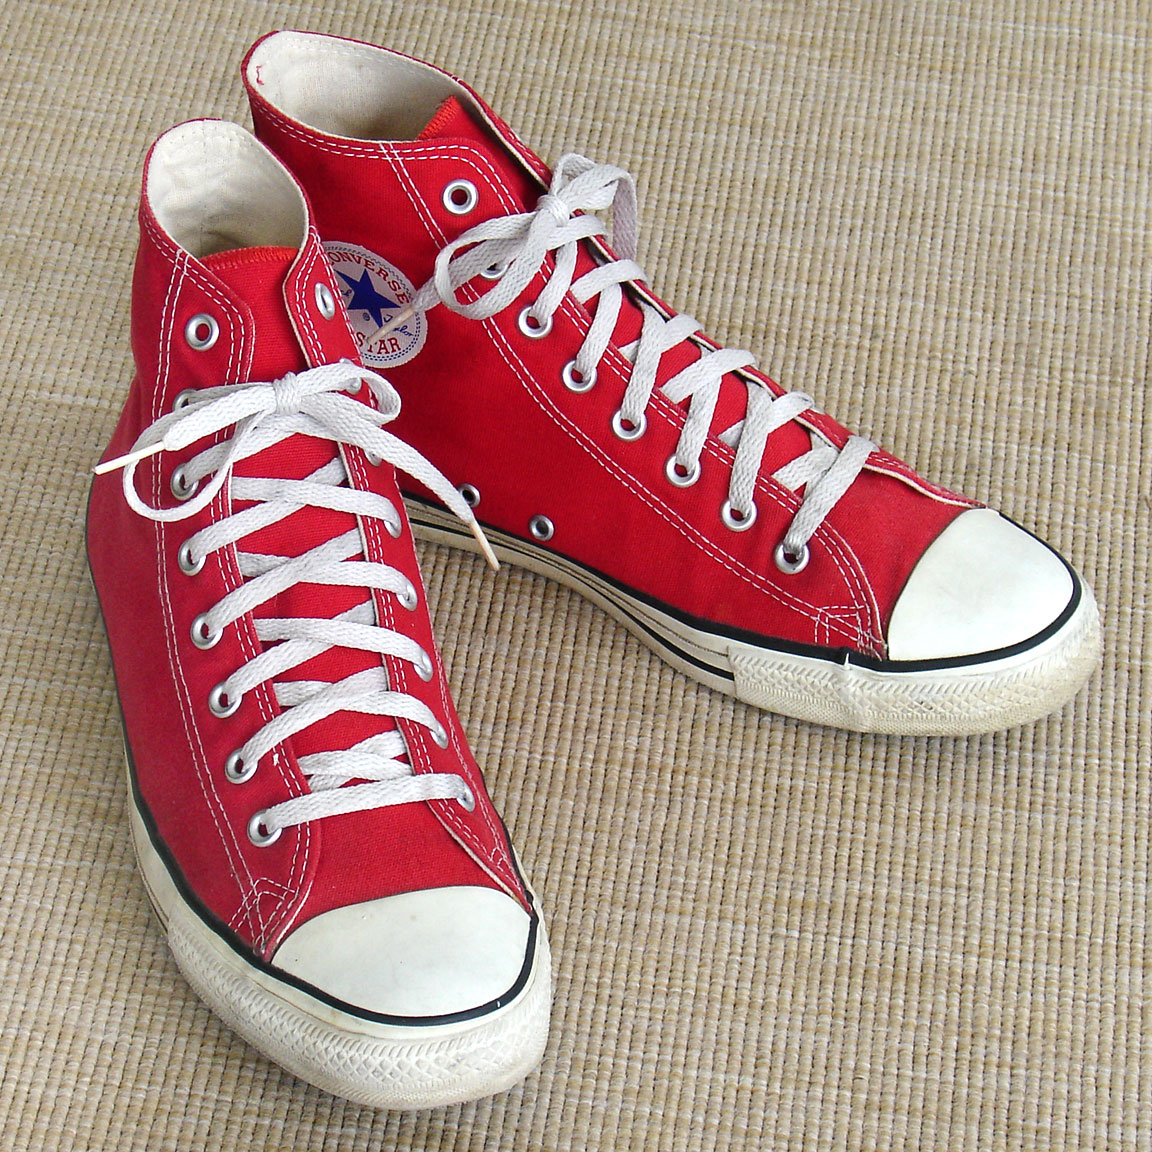 95c5f3439ce8 Vintage red hi-top American-made Converse All Star Chuck Taylor shoes for  sale